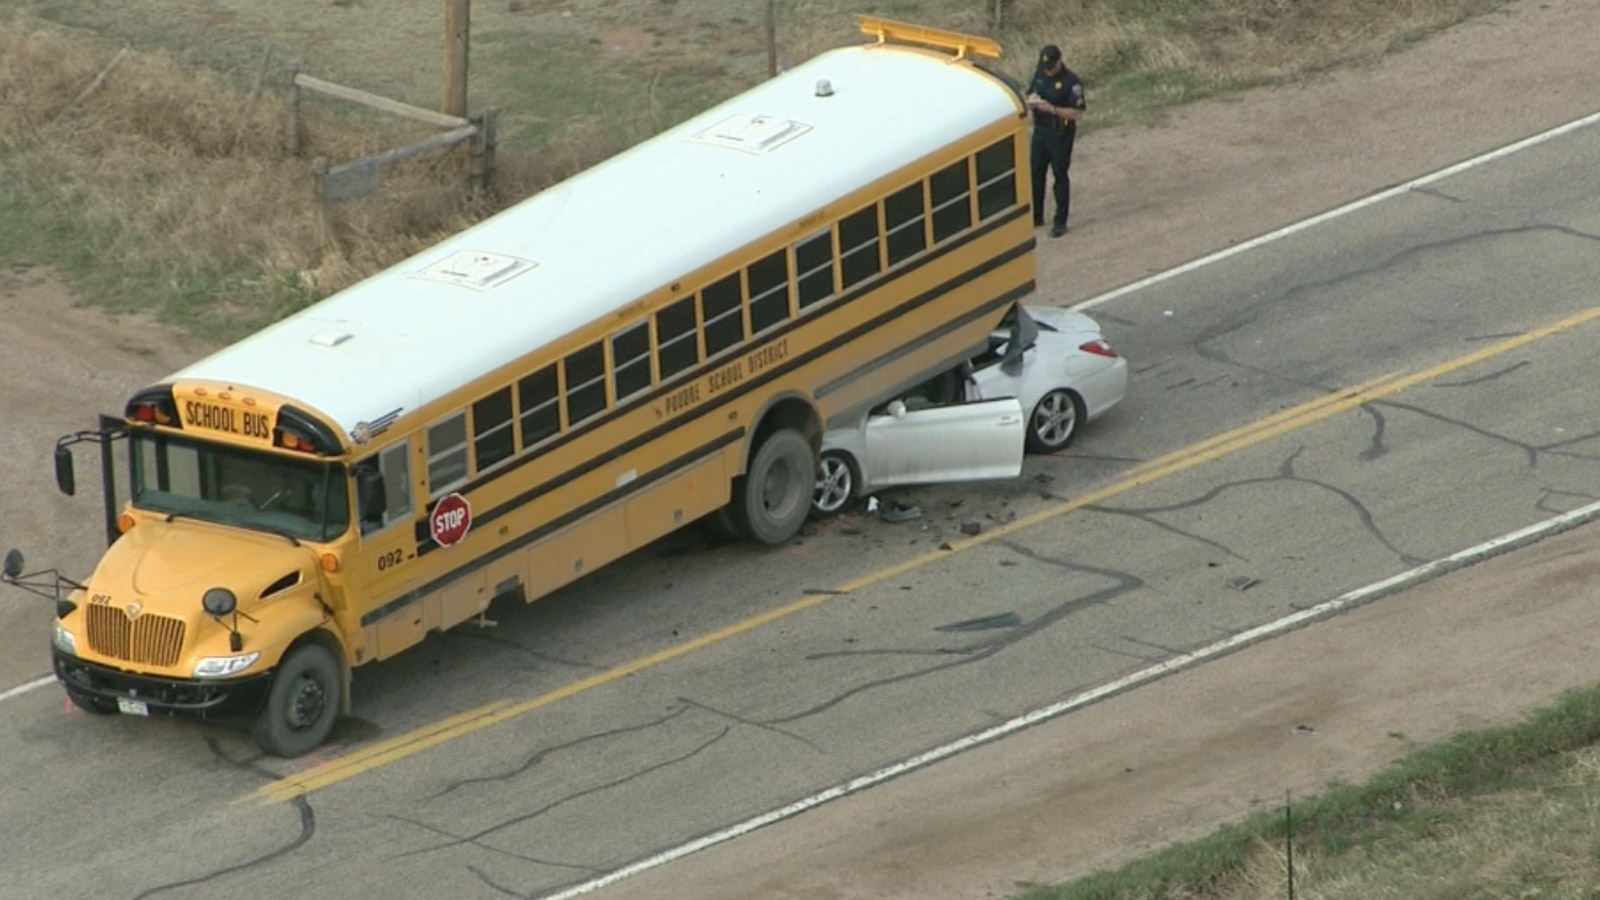 Copter4 flew over a Poudre Valley School bus was involved in a serious crash in Larimer County on Friday morning (credit: CBS)